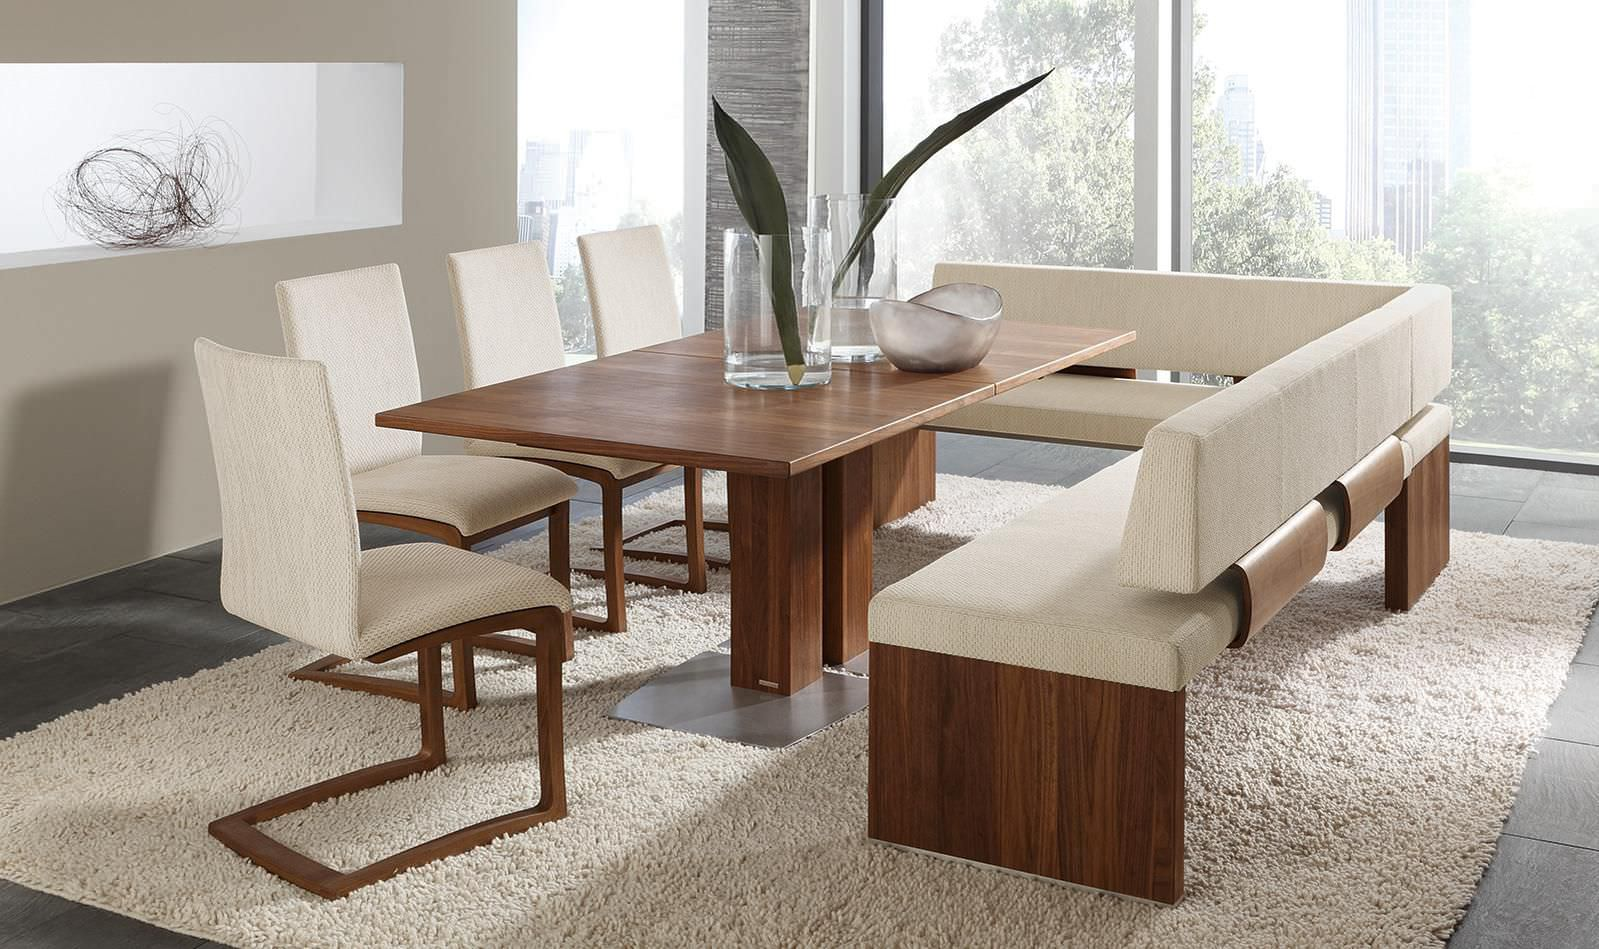 Rectangle dining table design - Contemporary Dining Table Wooden Rectangular Et364